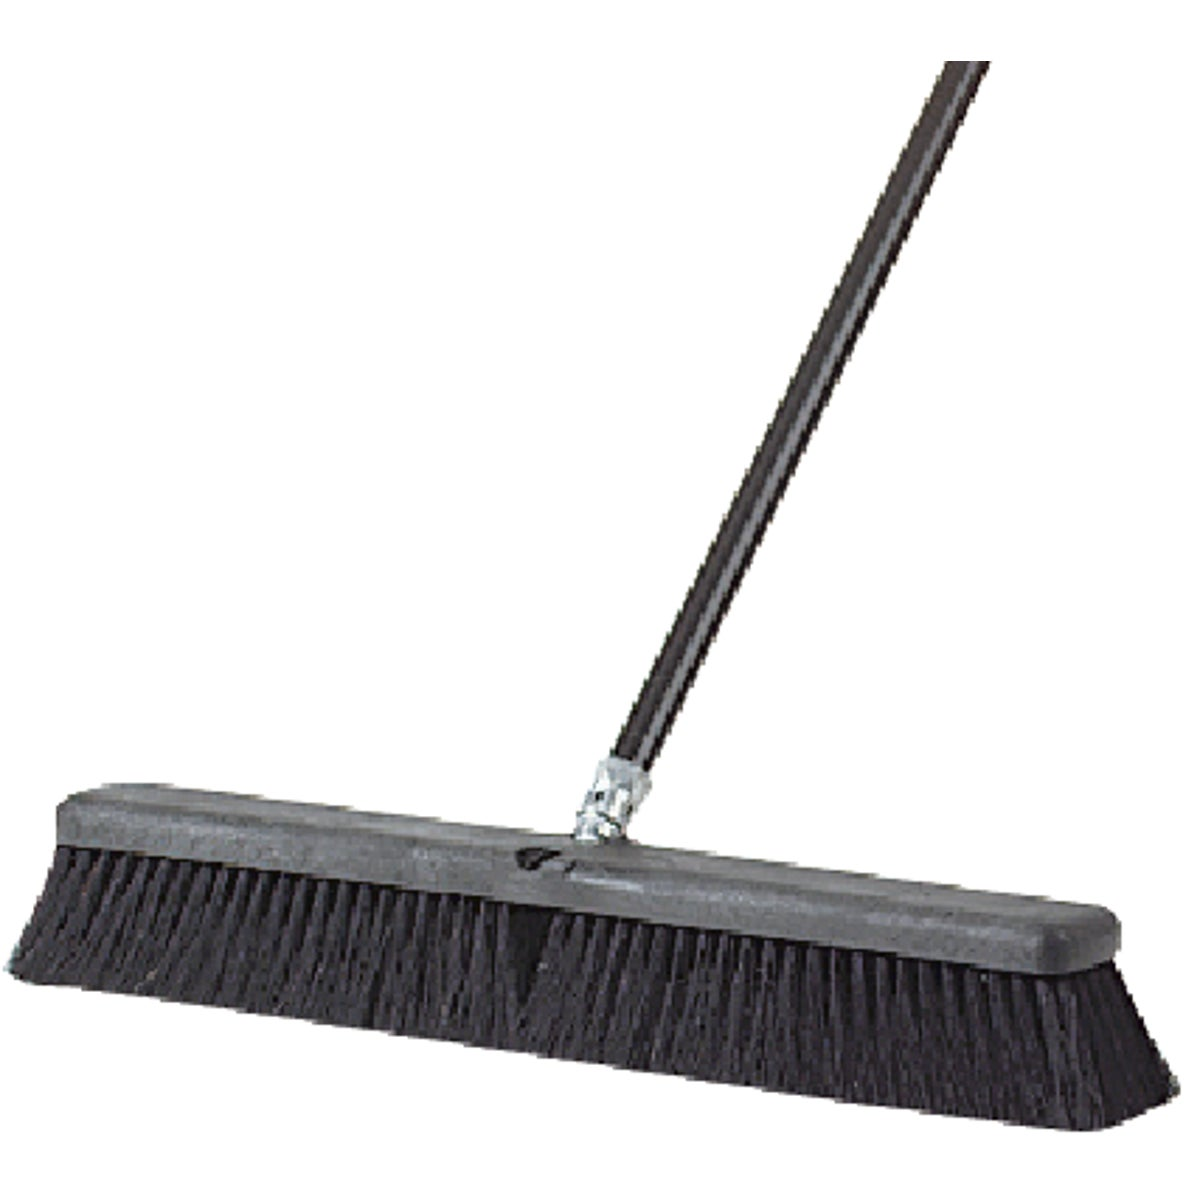 "24"" SYNTHETIC PUSH BROOM - DIB89221 by D Q B Ind"